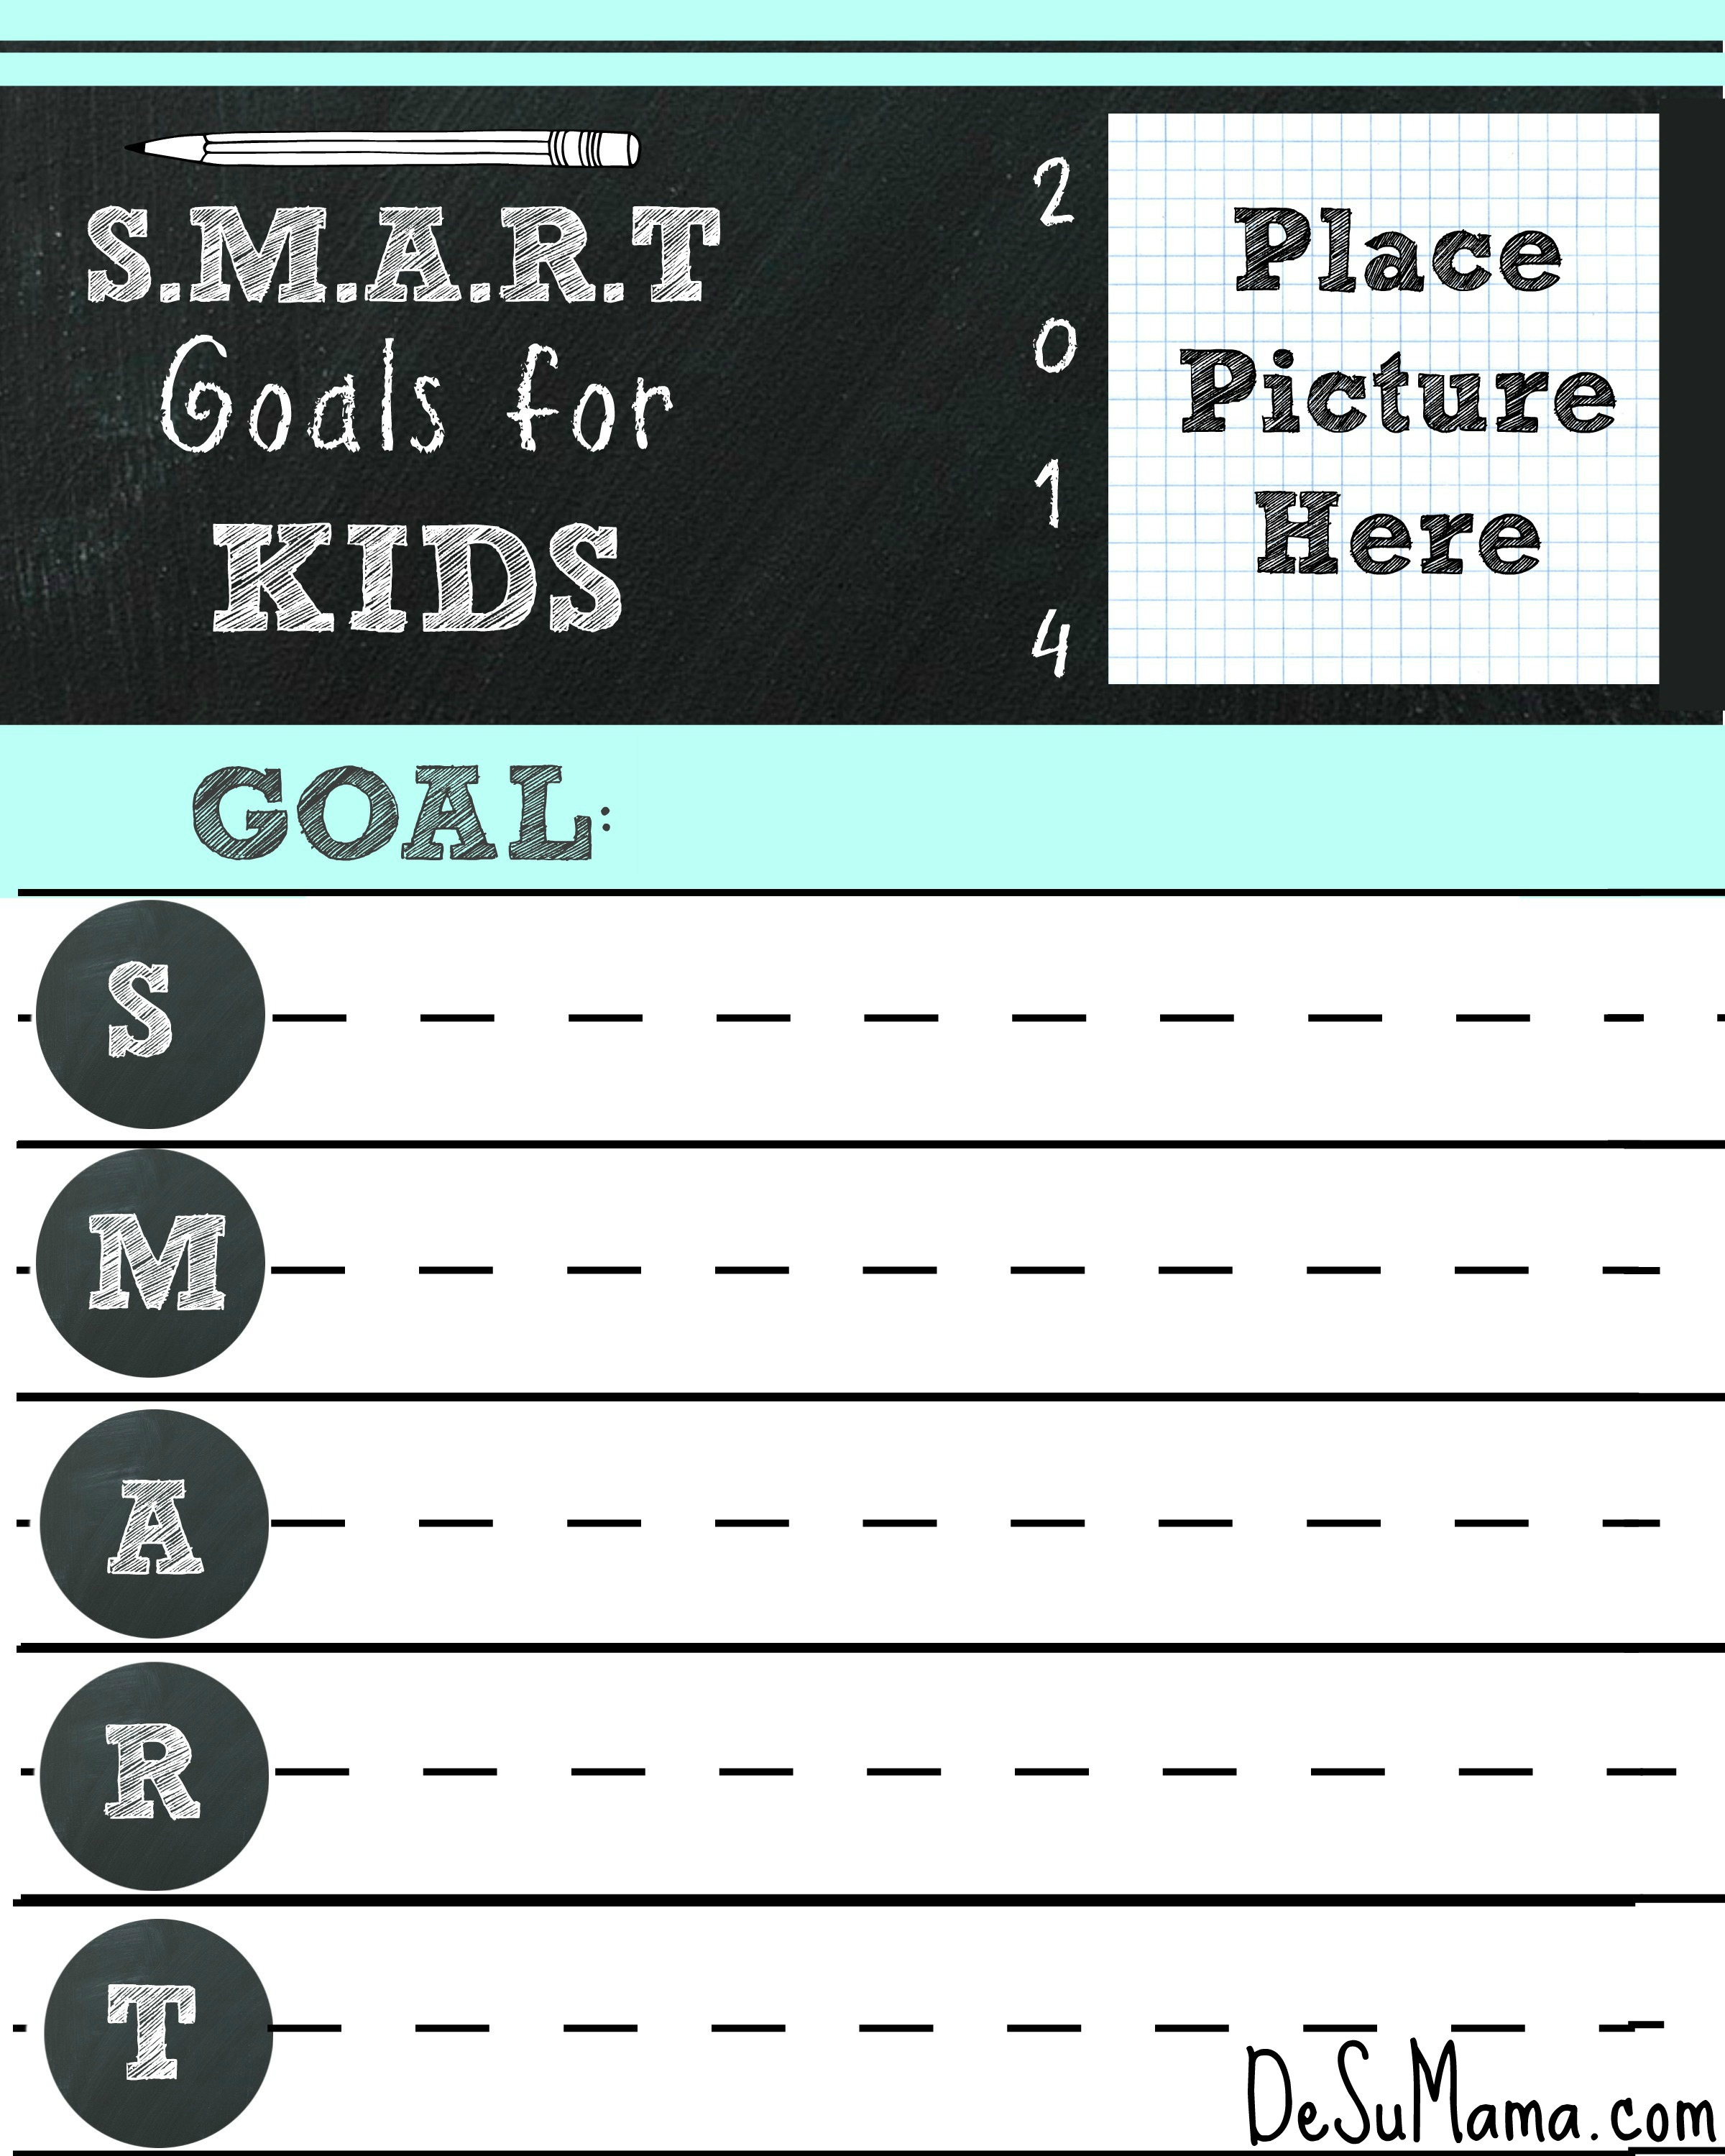 New Years Goal Setting for Kids the SMART Way